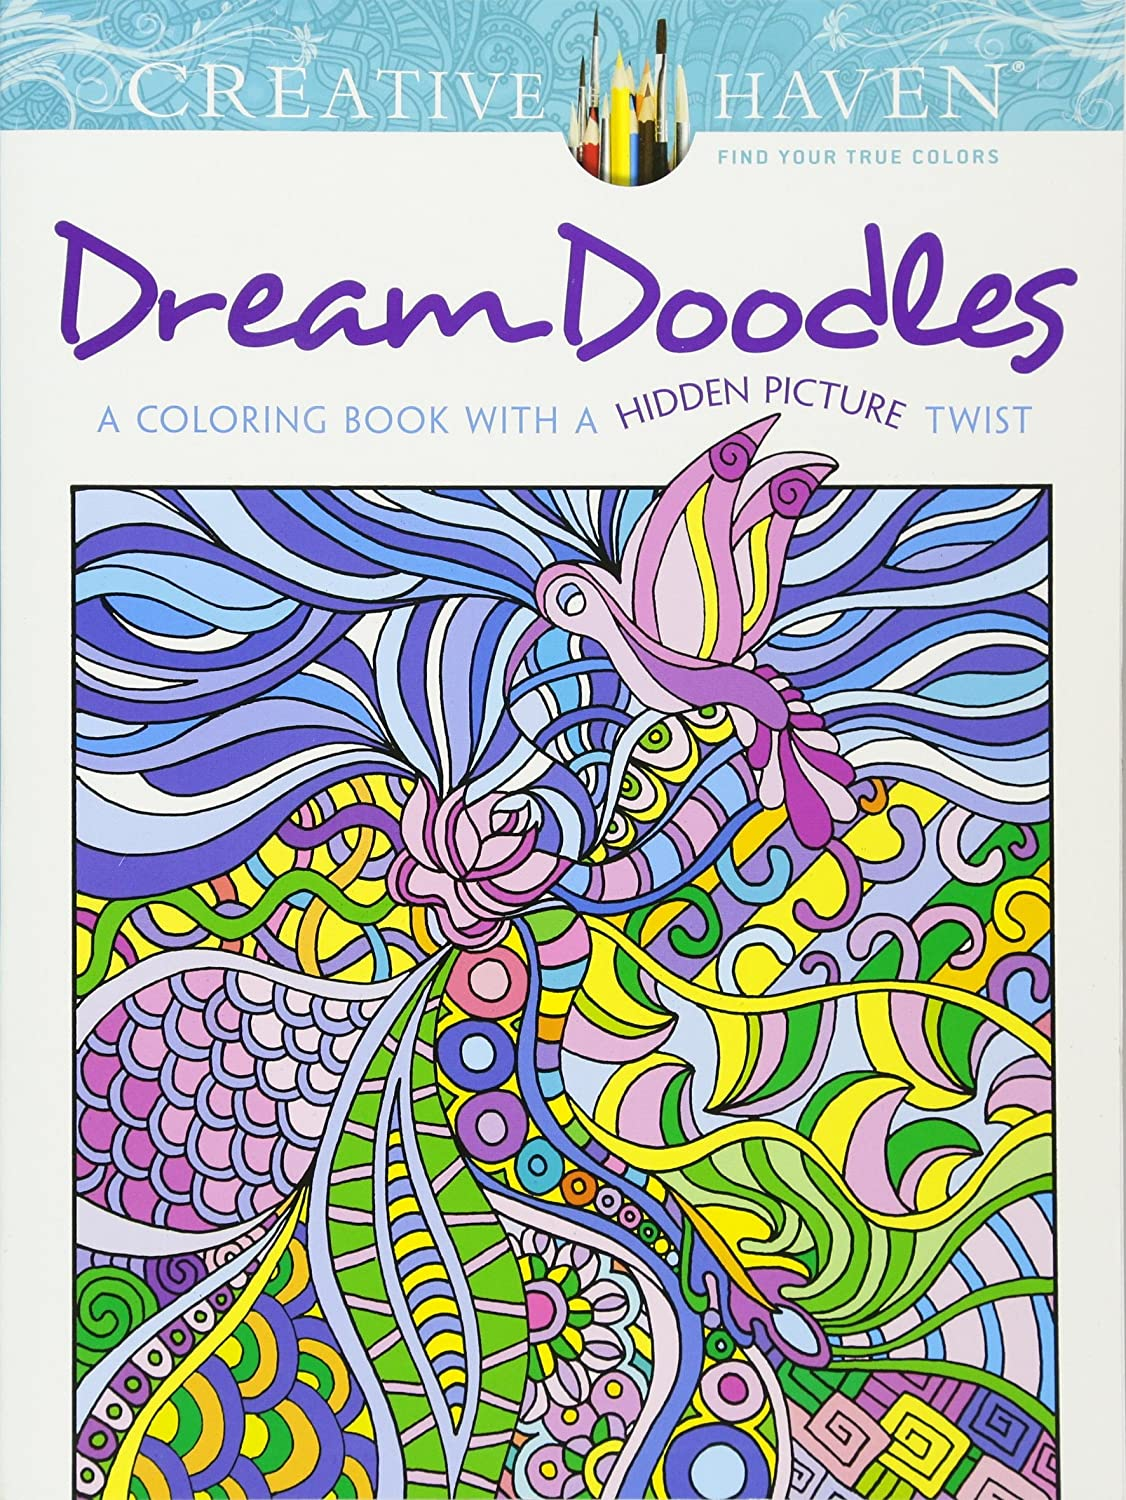 Lotus designs coloring book - Amazon Com Creative Haven Dream Doodles A Coloring Book With A Hidden Picture Twist Adult Coloring 0800759799022 Kathleen G Ahrens Books